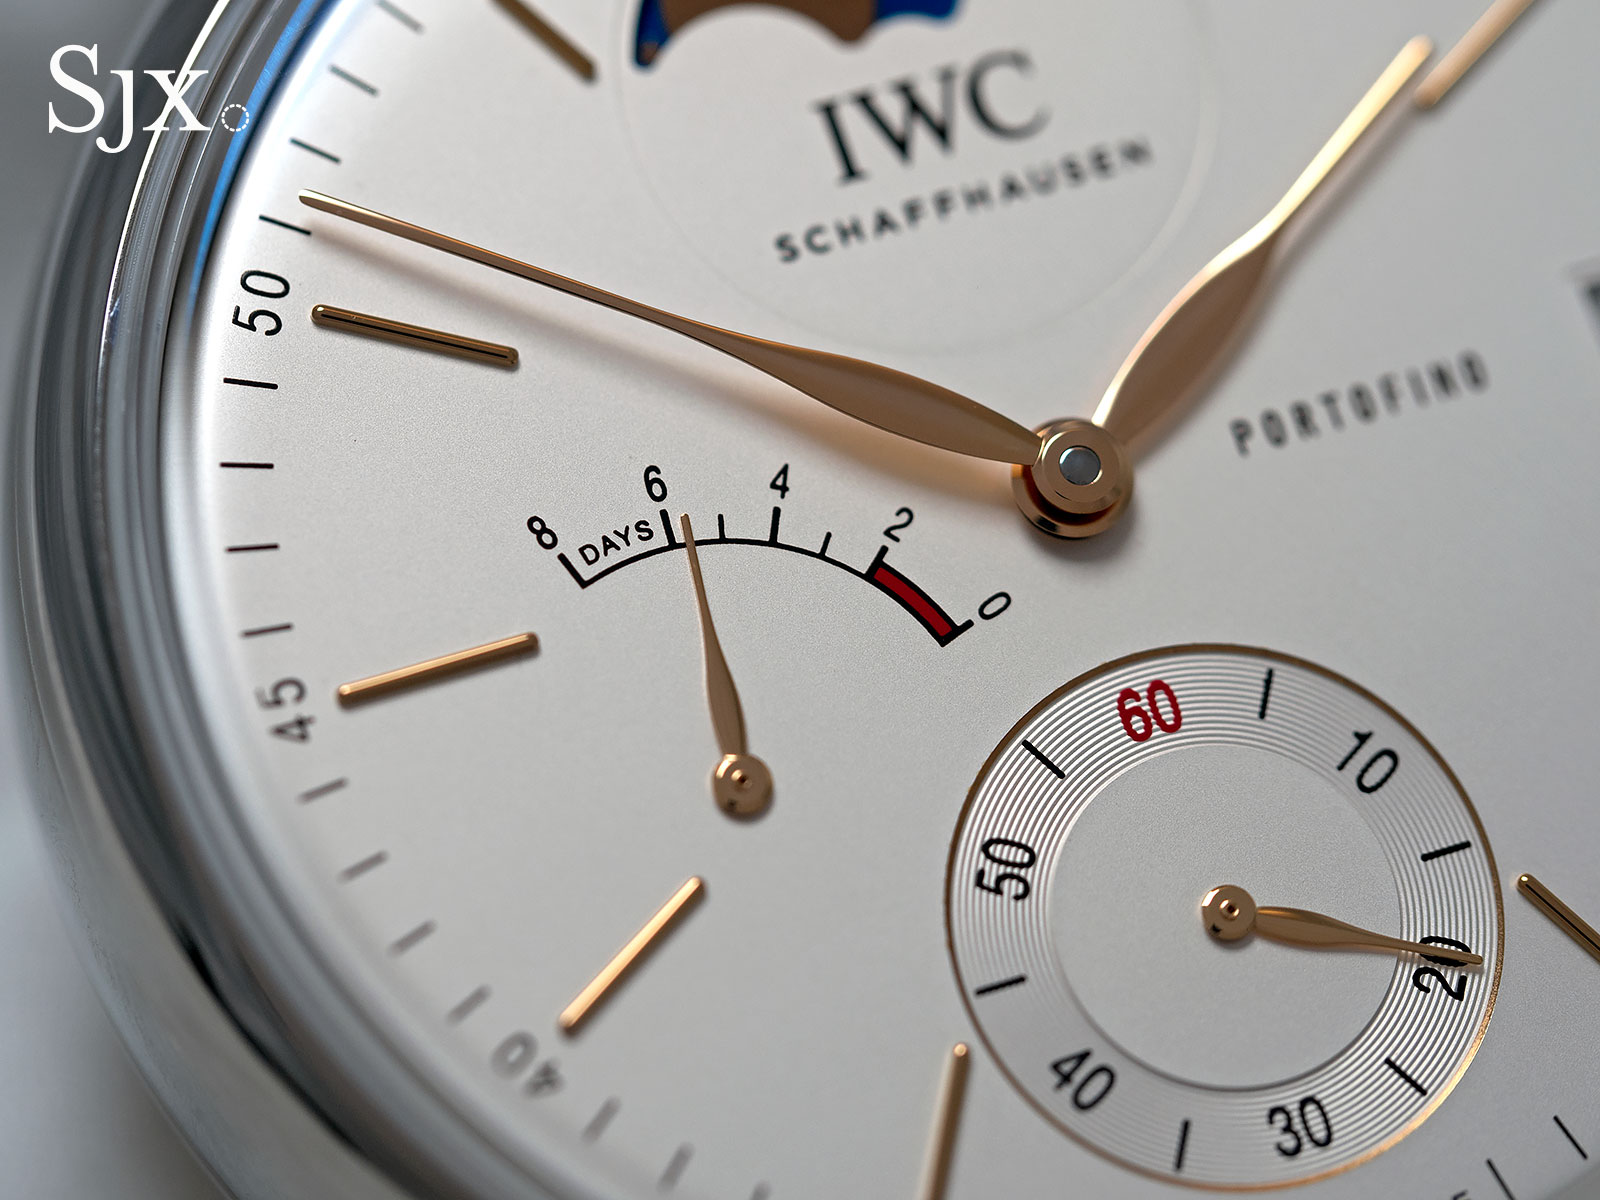 IWC Portofino Hand-Wound Eight Days Moon Phase 5